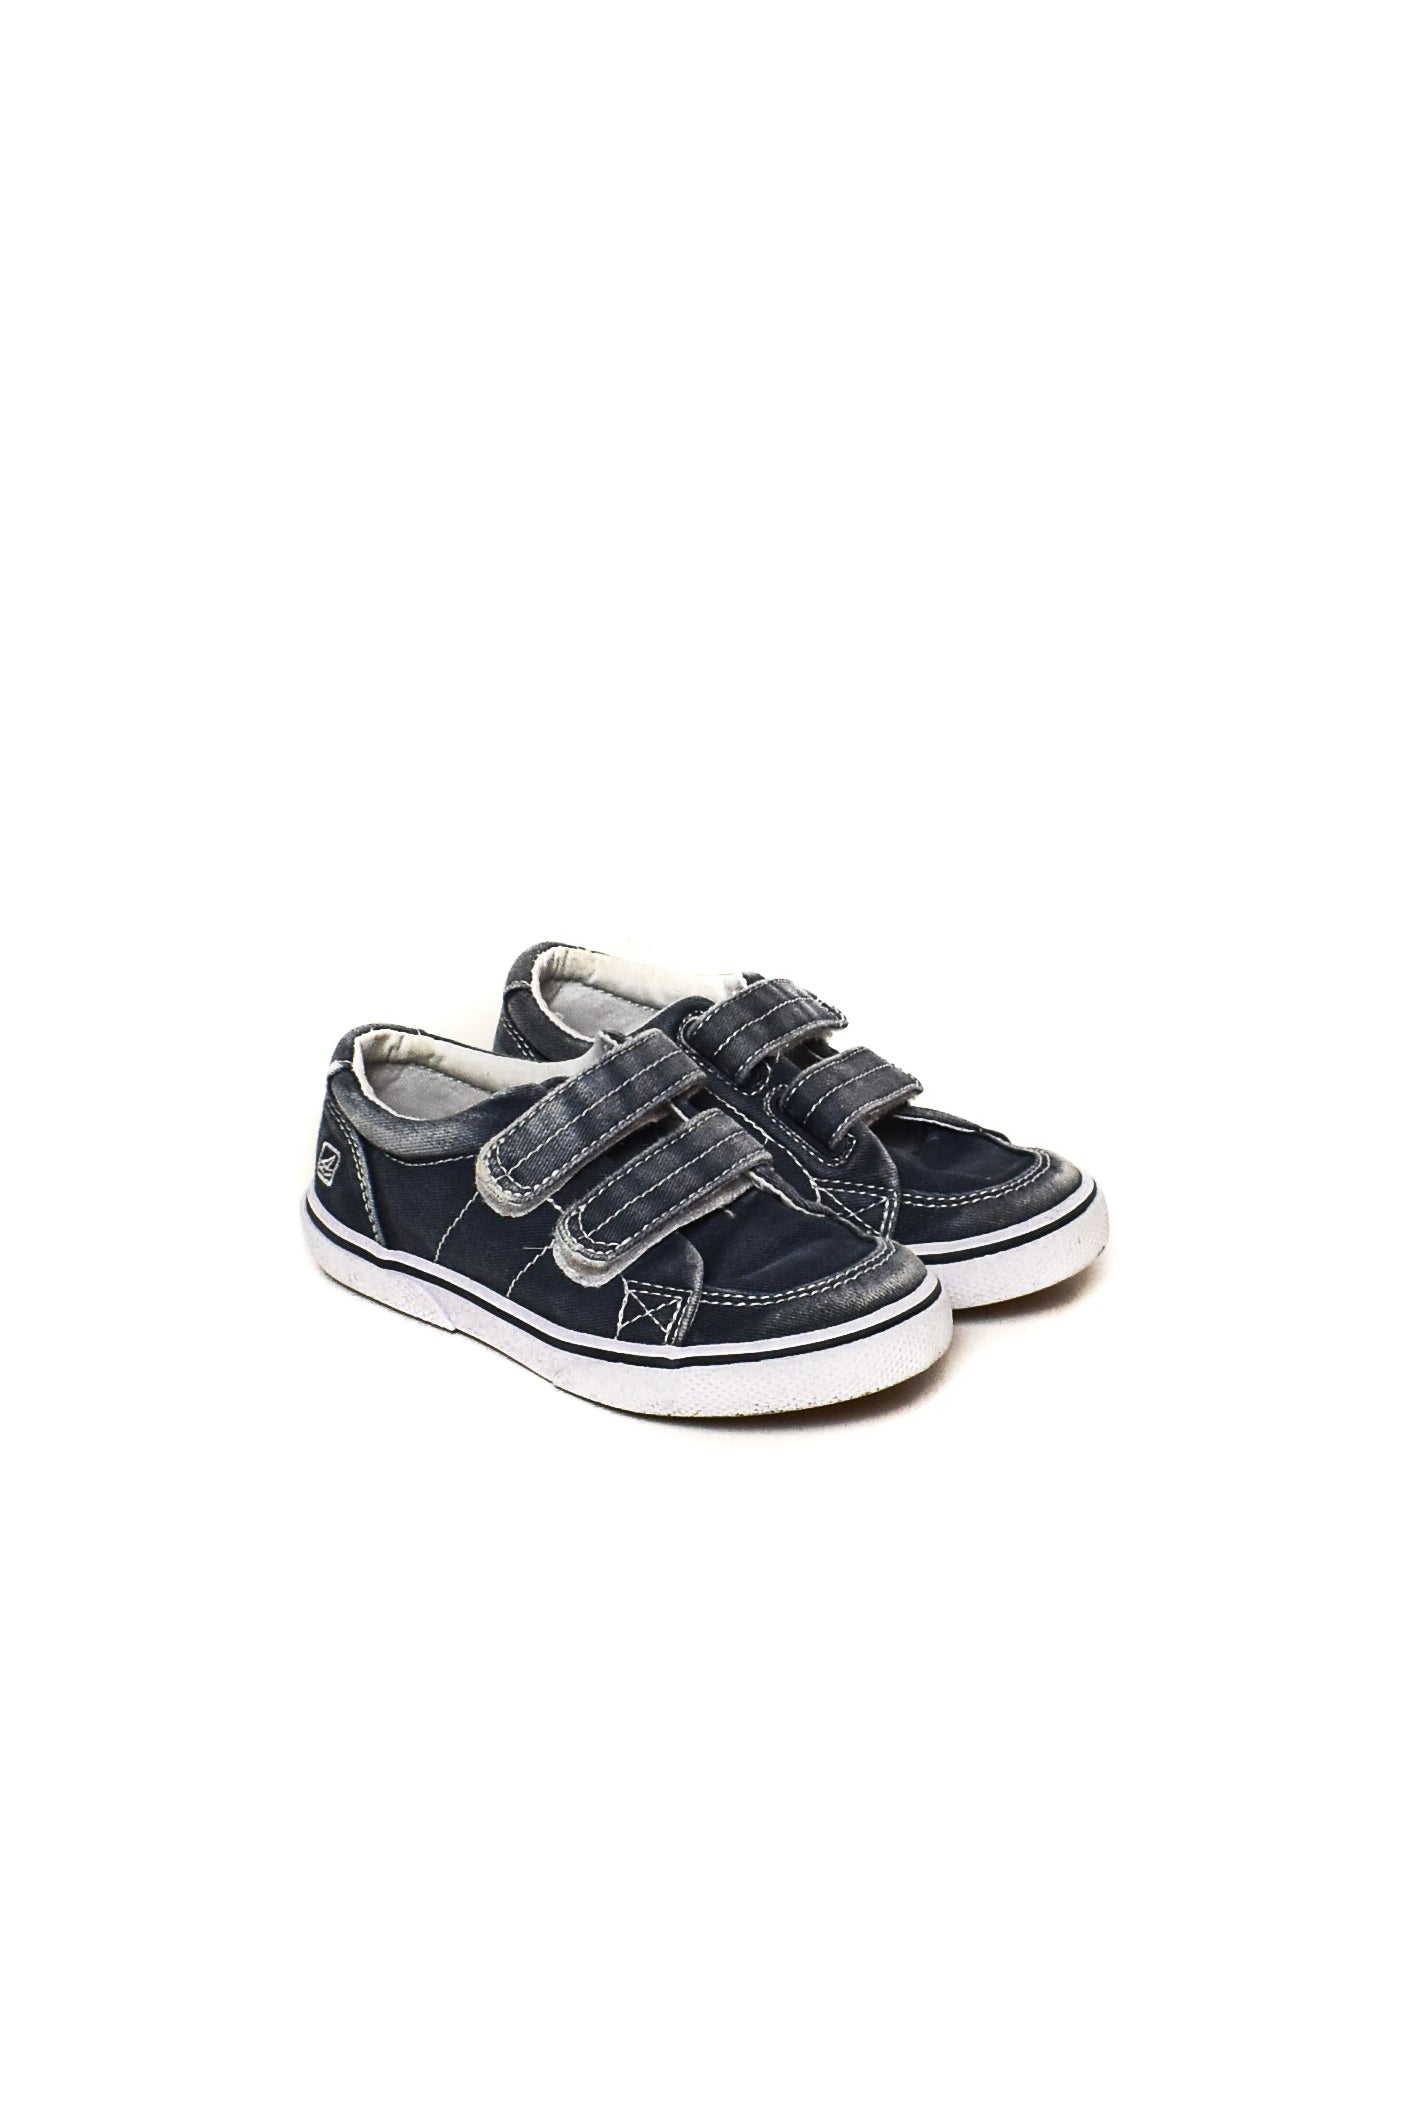 10007653 Sperry Kids ~ Shoes 3T (EU 25) at Retykle